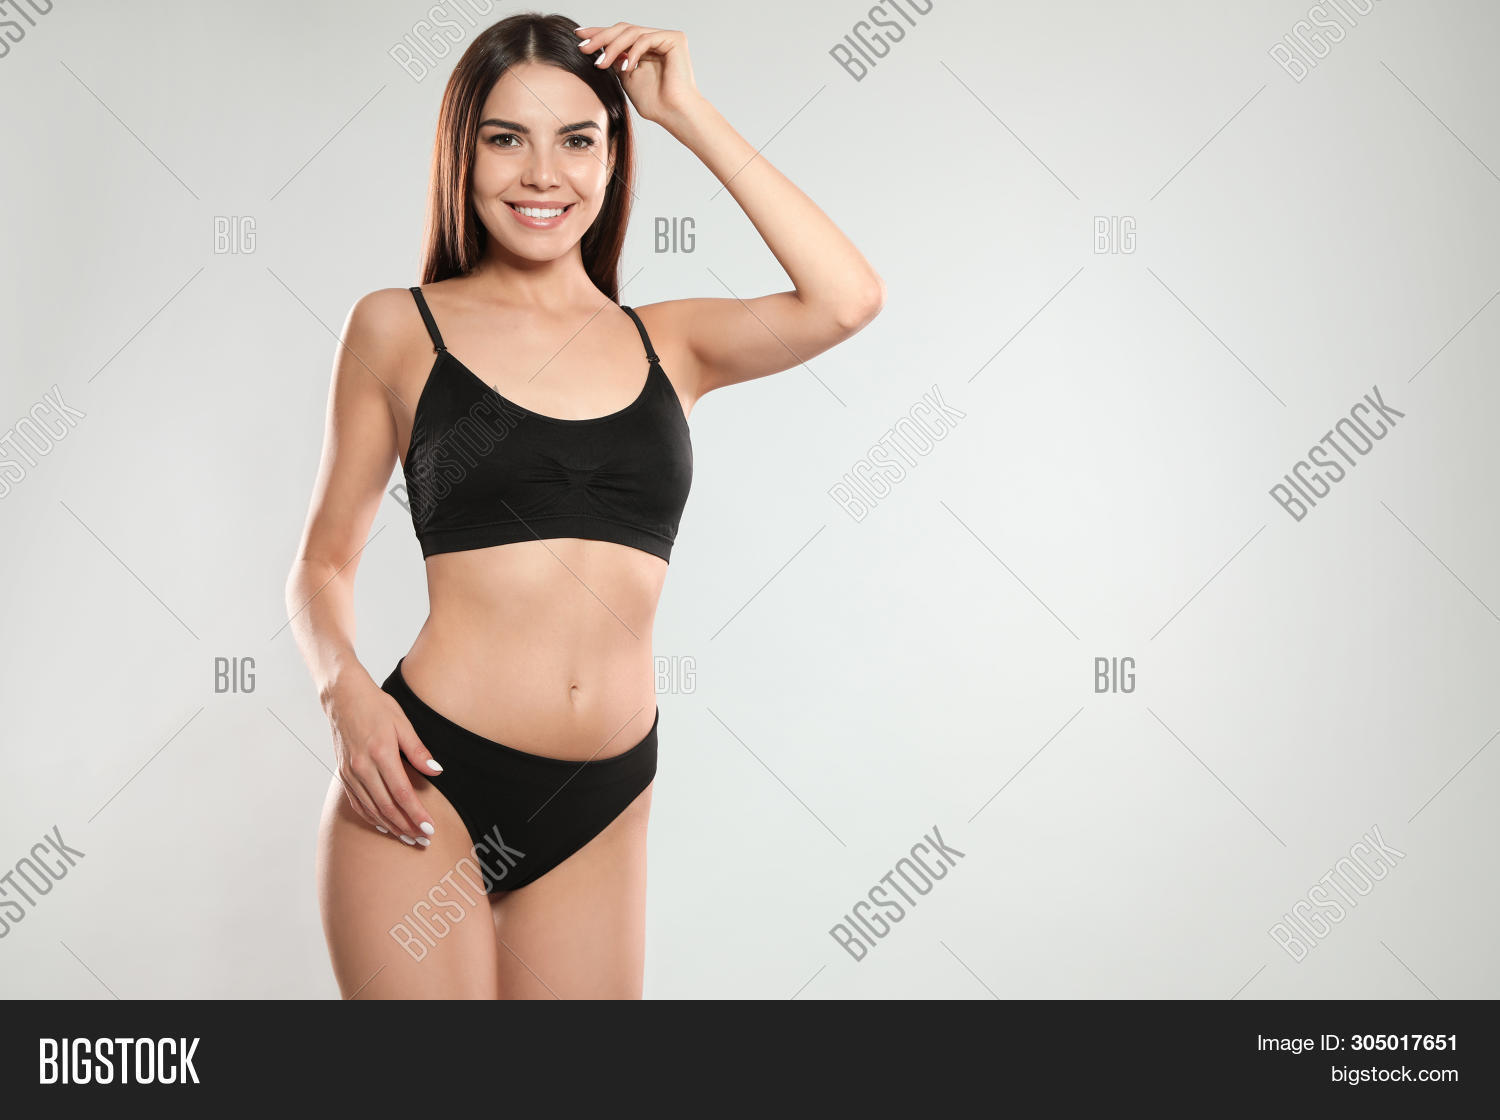 Portrait Of Attractive Young Woman With Slim Body In Swimwear On White Background. Space For Text